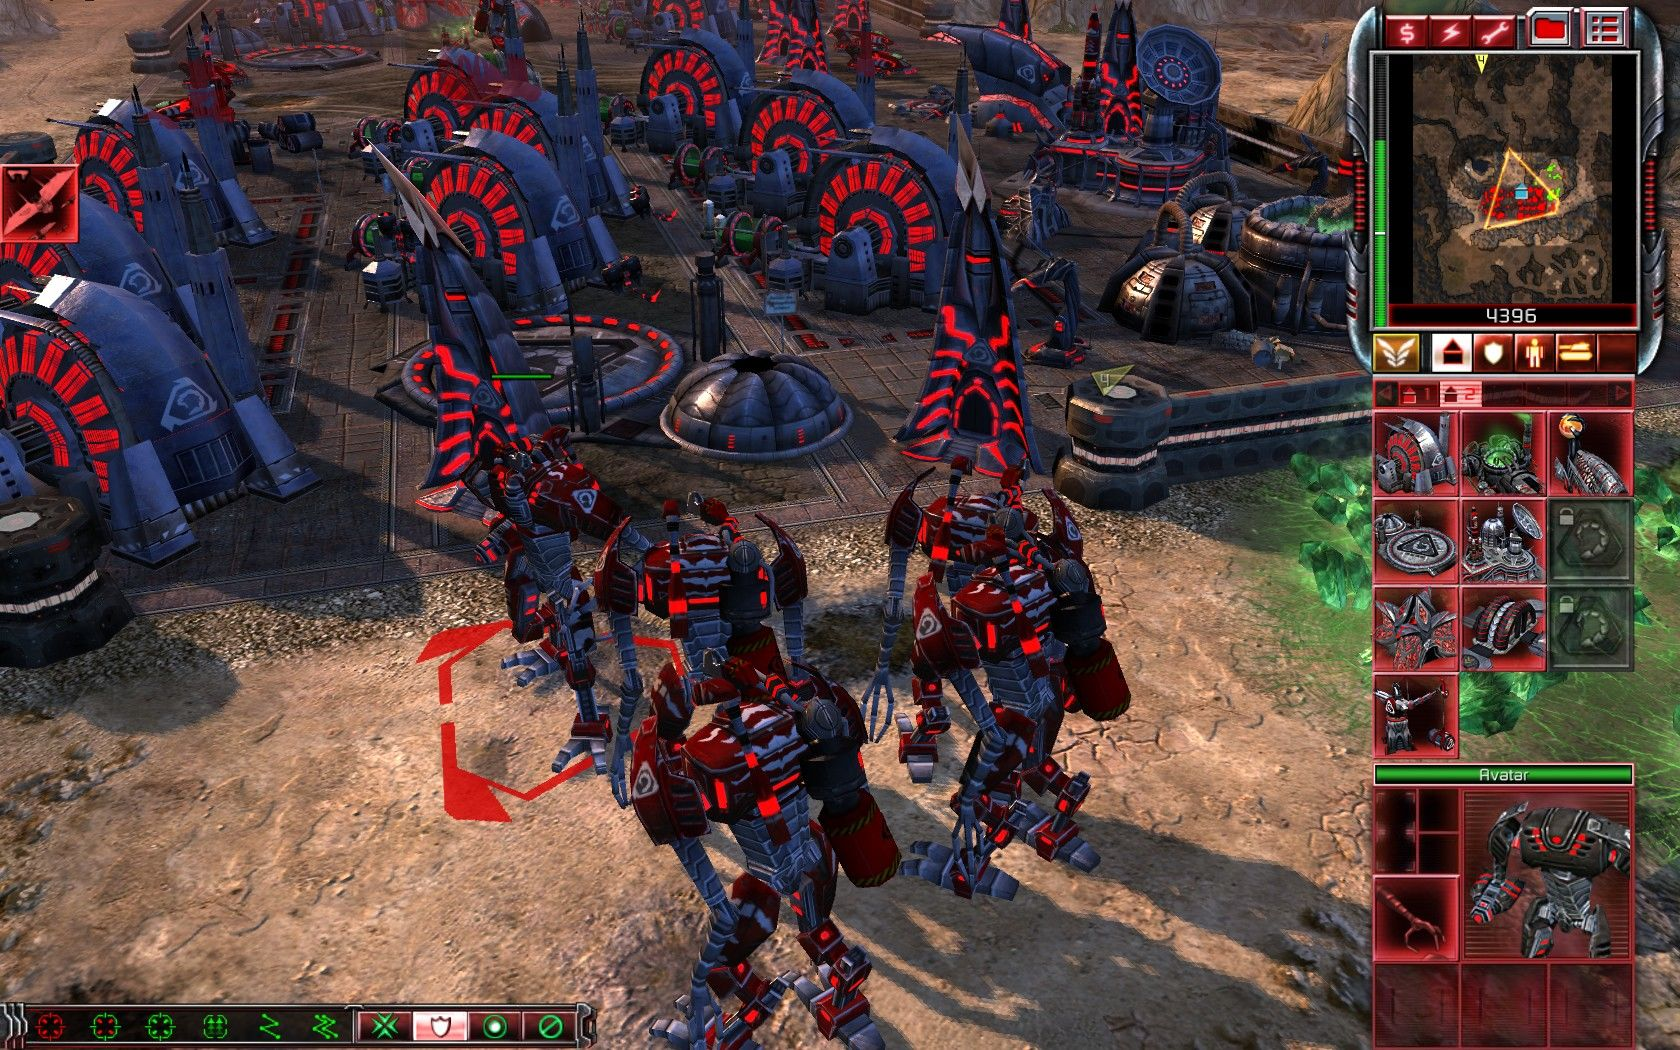 Command & Conquer 3: Tiberium Wars Windows Nod Avatars fully upgraded by destroying friendly units in the process.